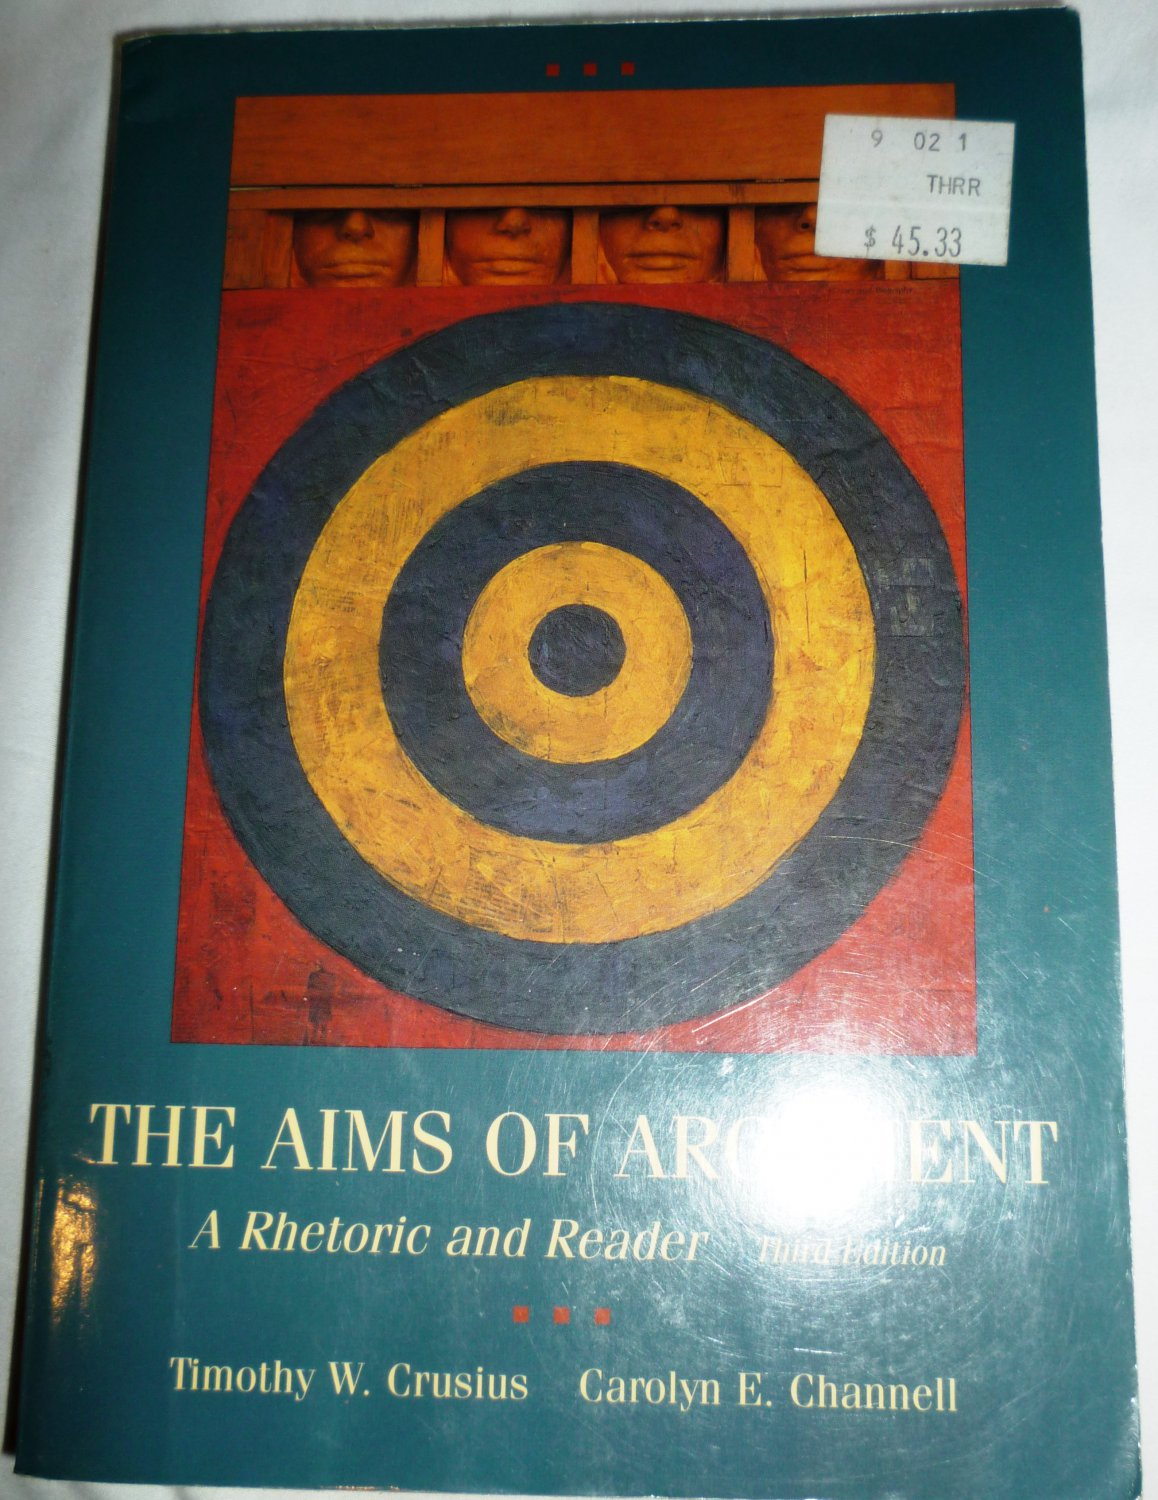 THE AIMS OF ARGUMENT A RHETORIC AND READER THIRD EDITION CRUSIUS CHANNELL